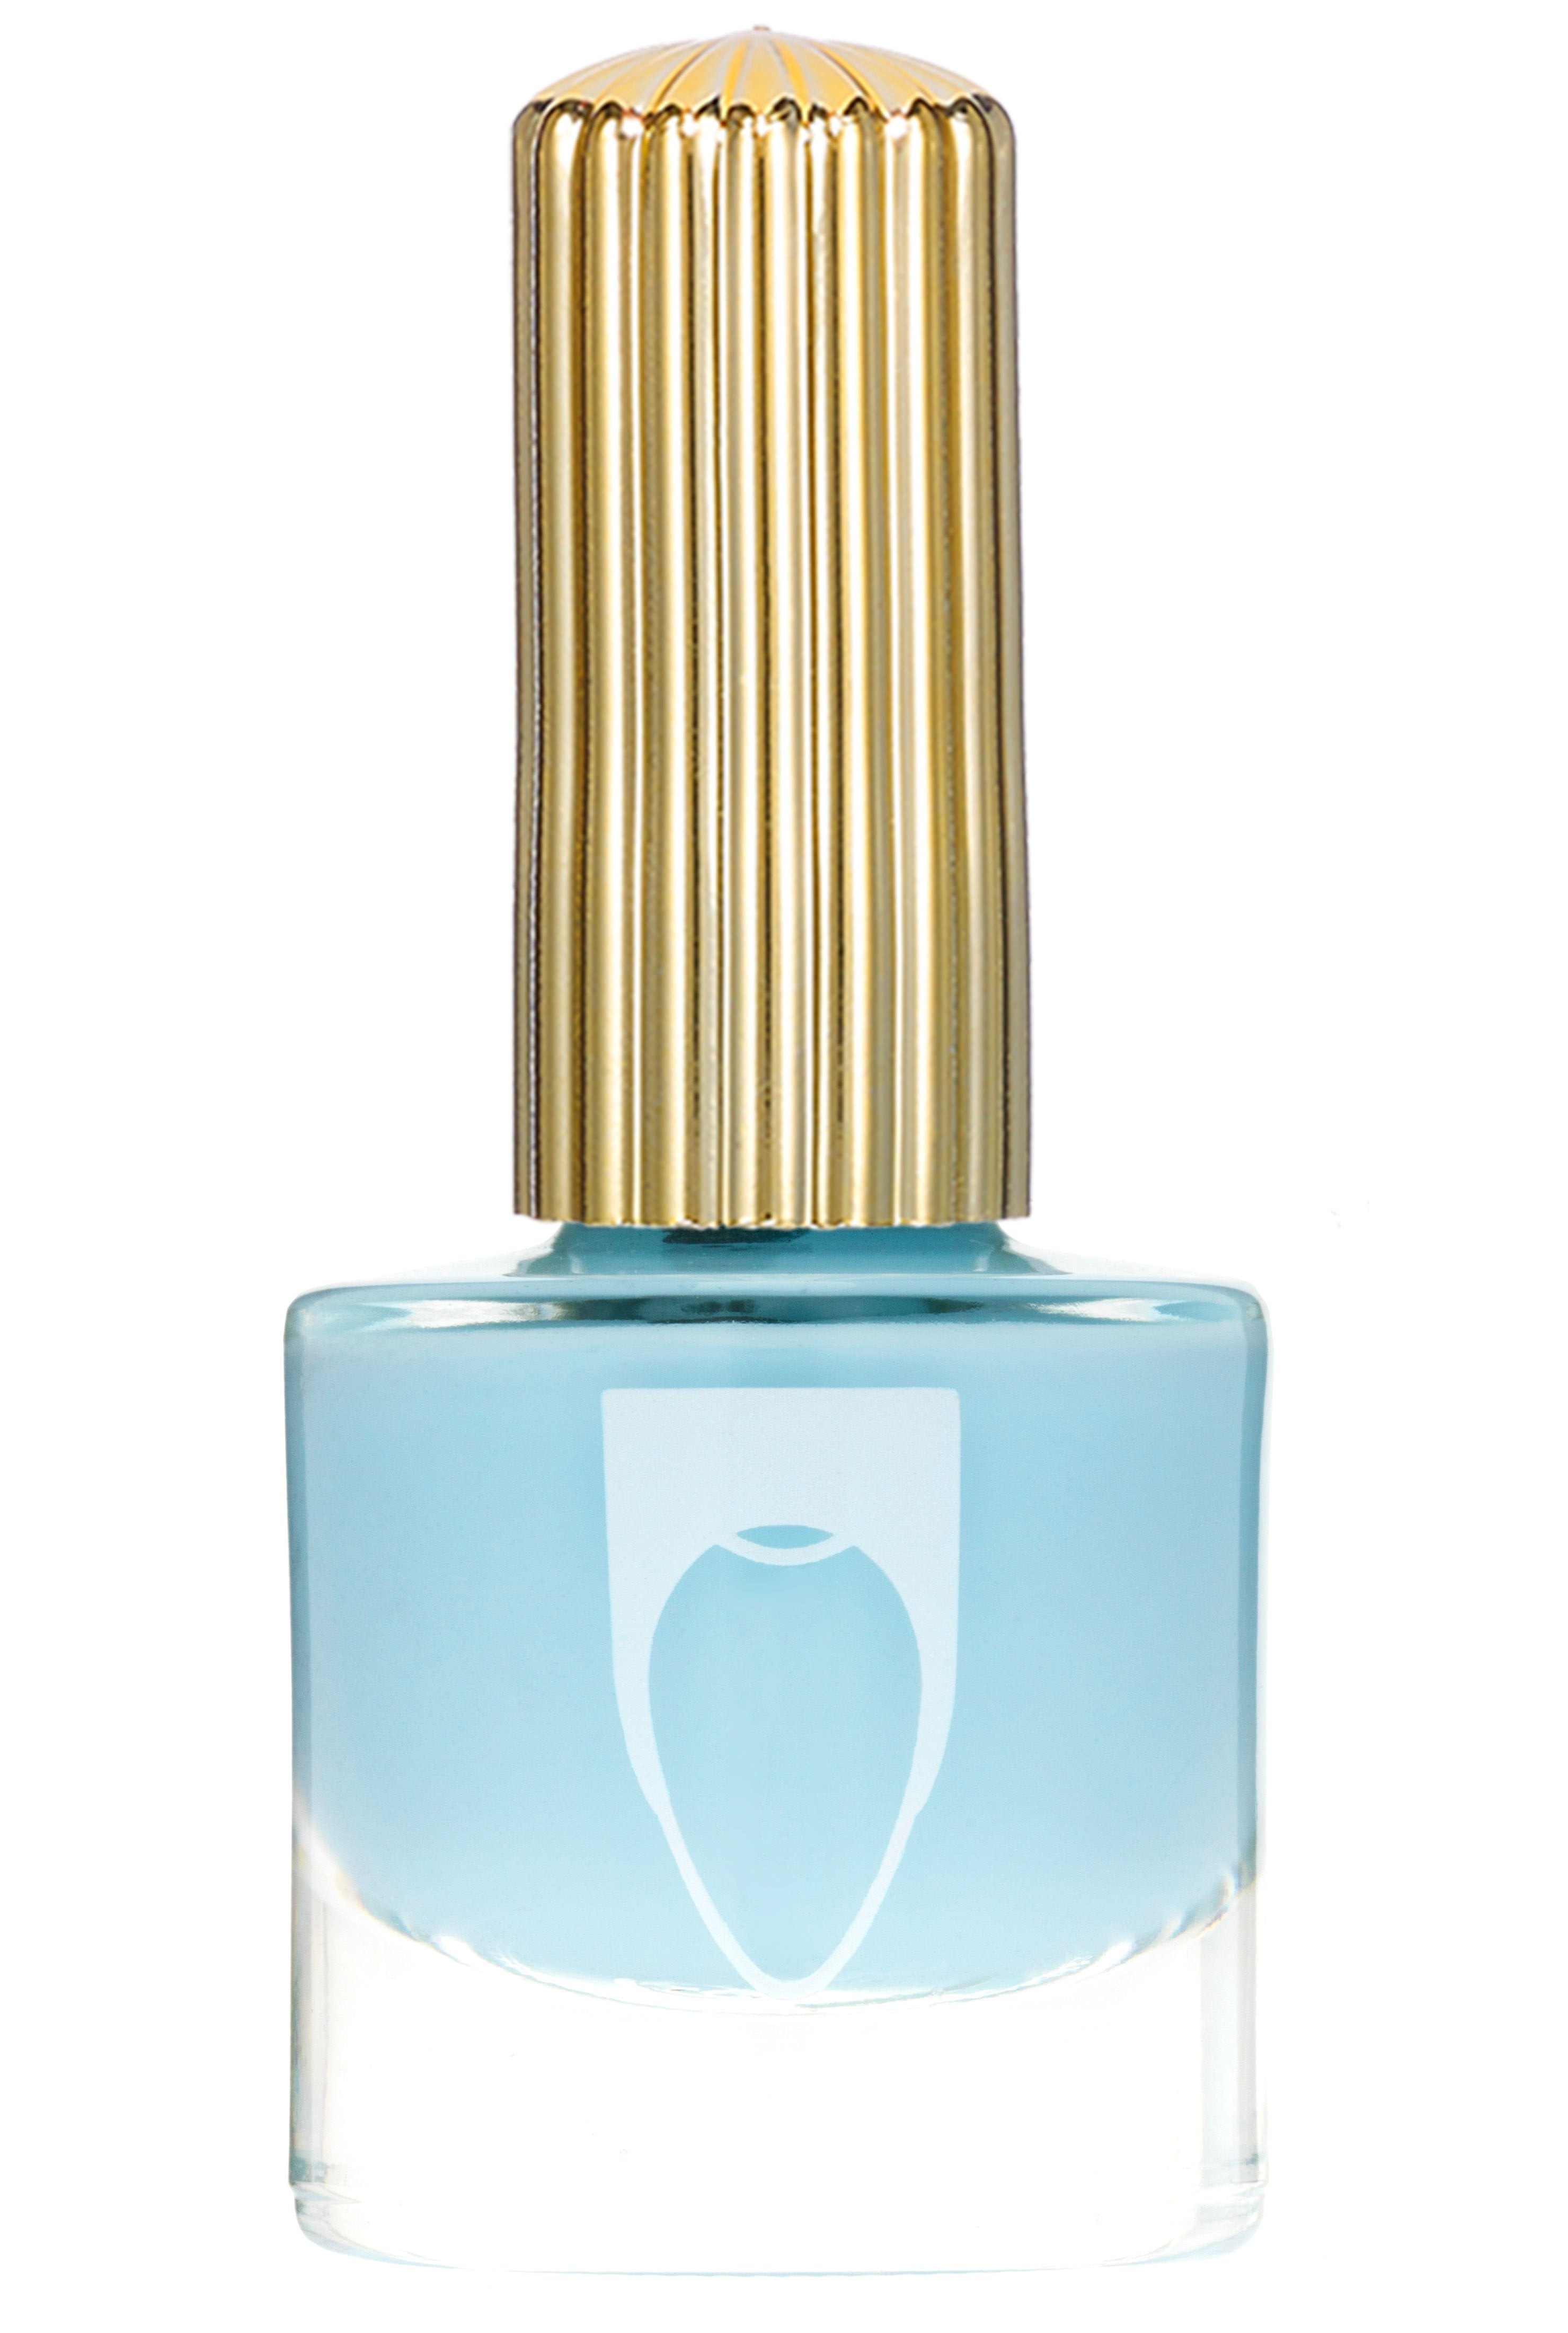 Bottle of Floss Gloss Nail Polish Bobby Bobby light blue color